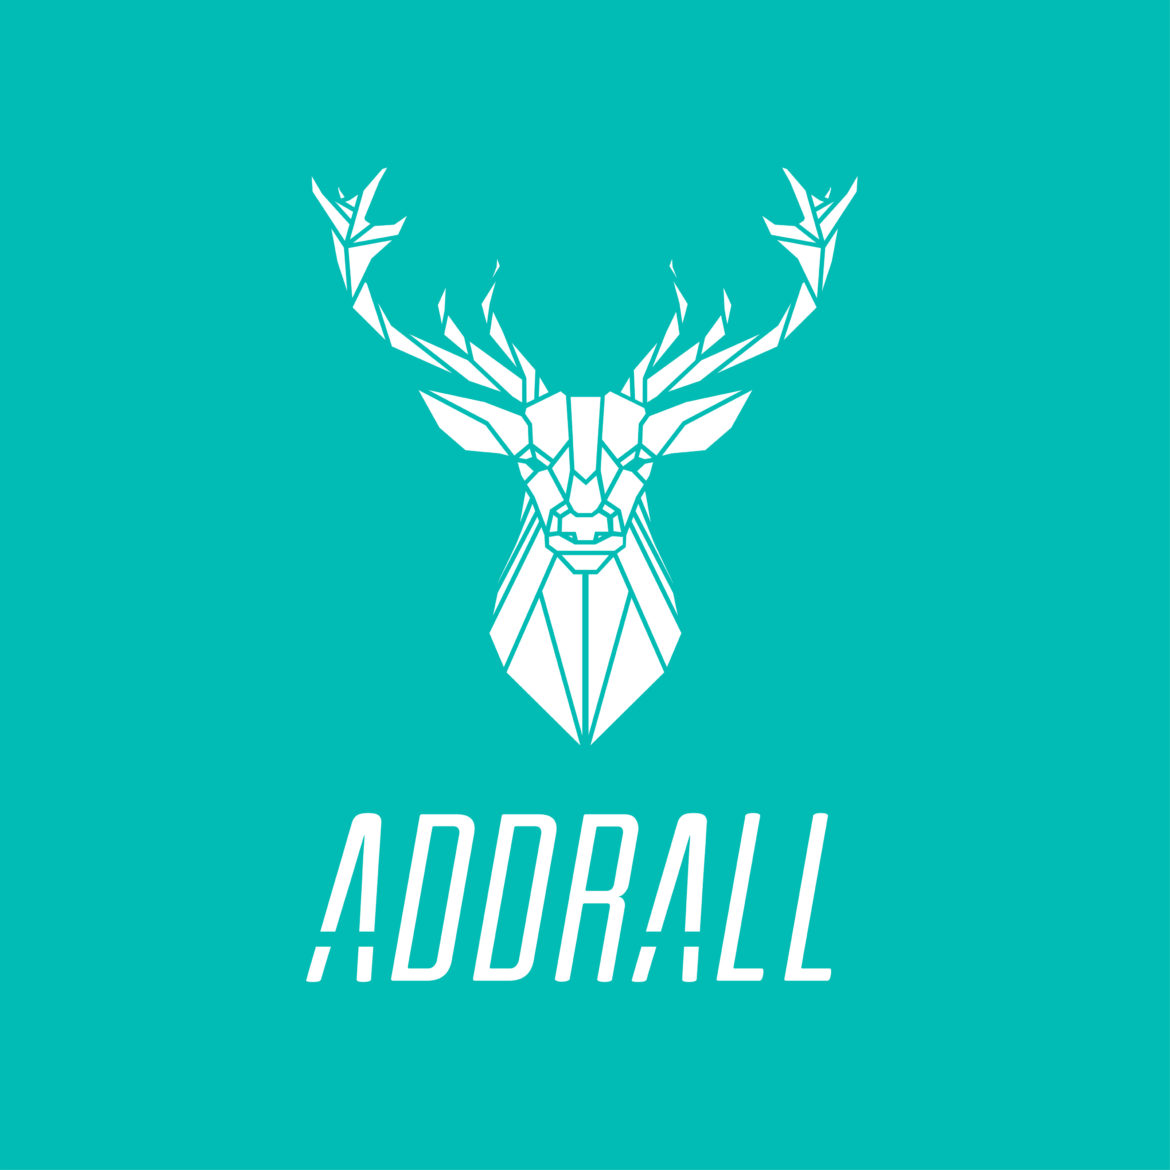 Addrall_Single_Cover